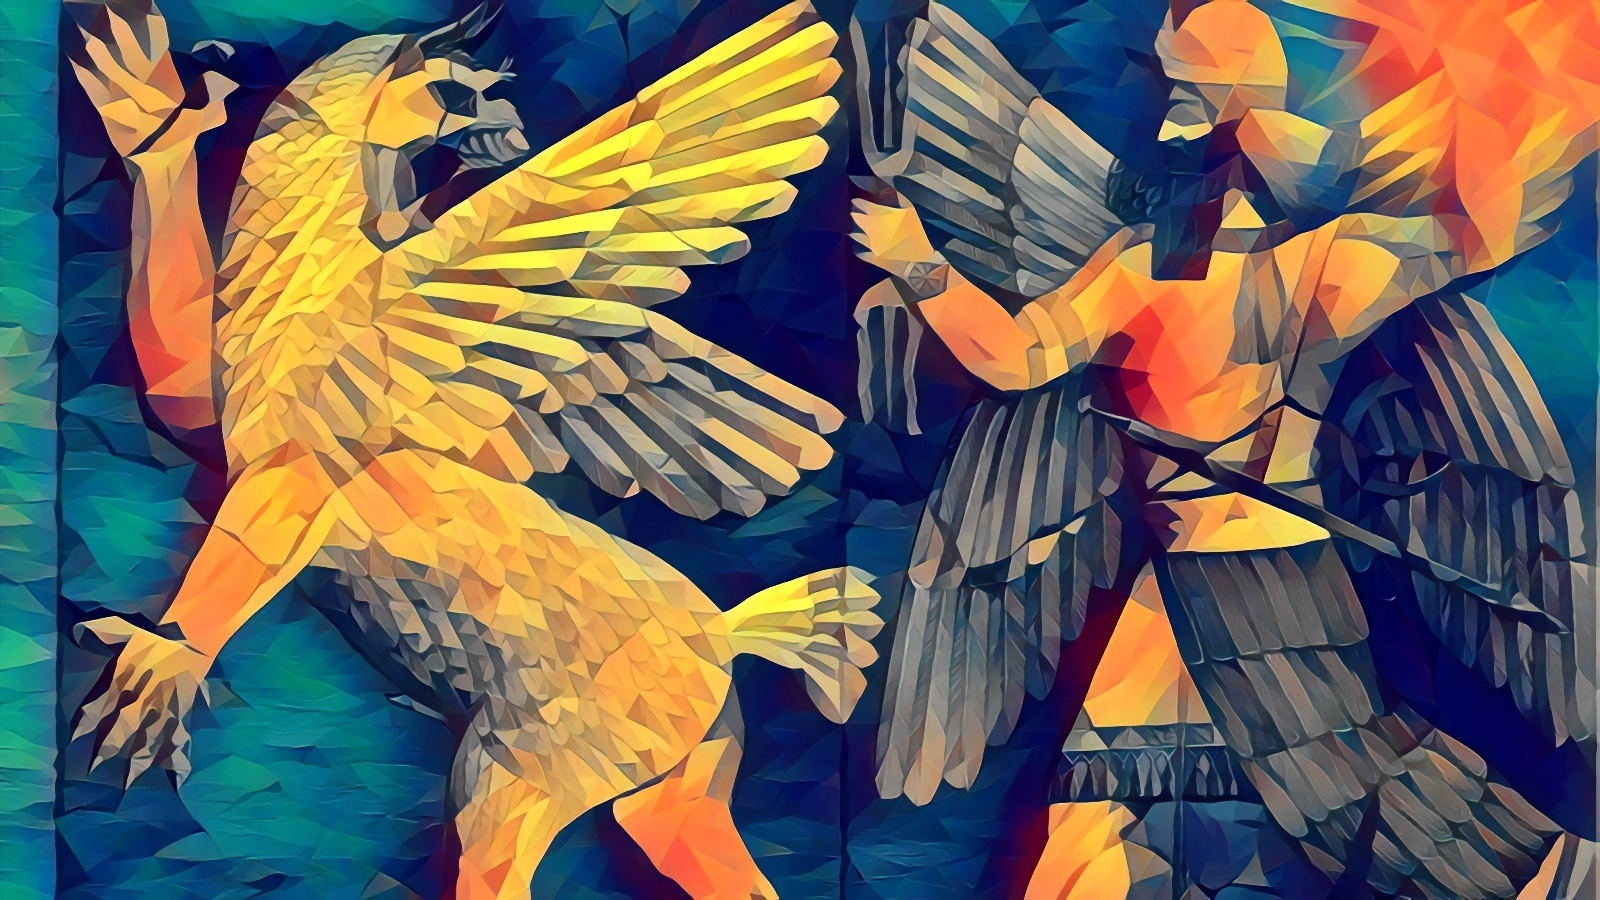 Marduk and the Ultimate weapon of the Anunnaki